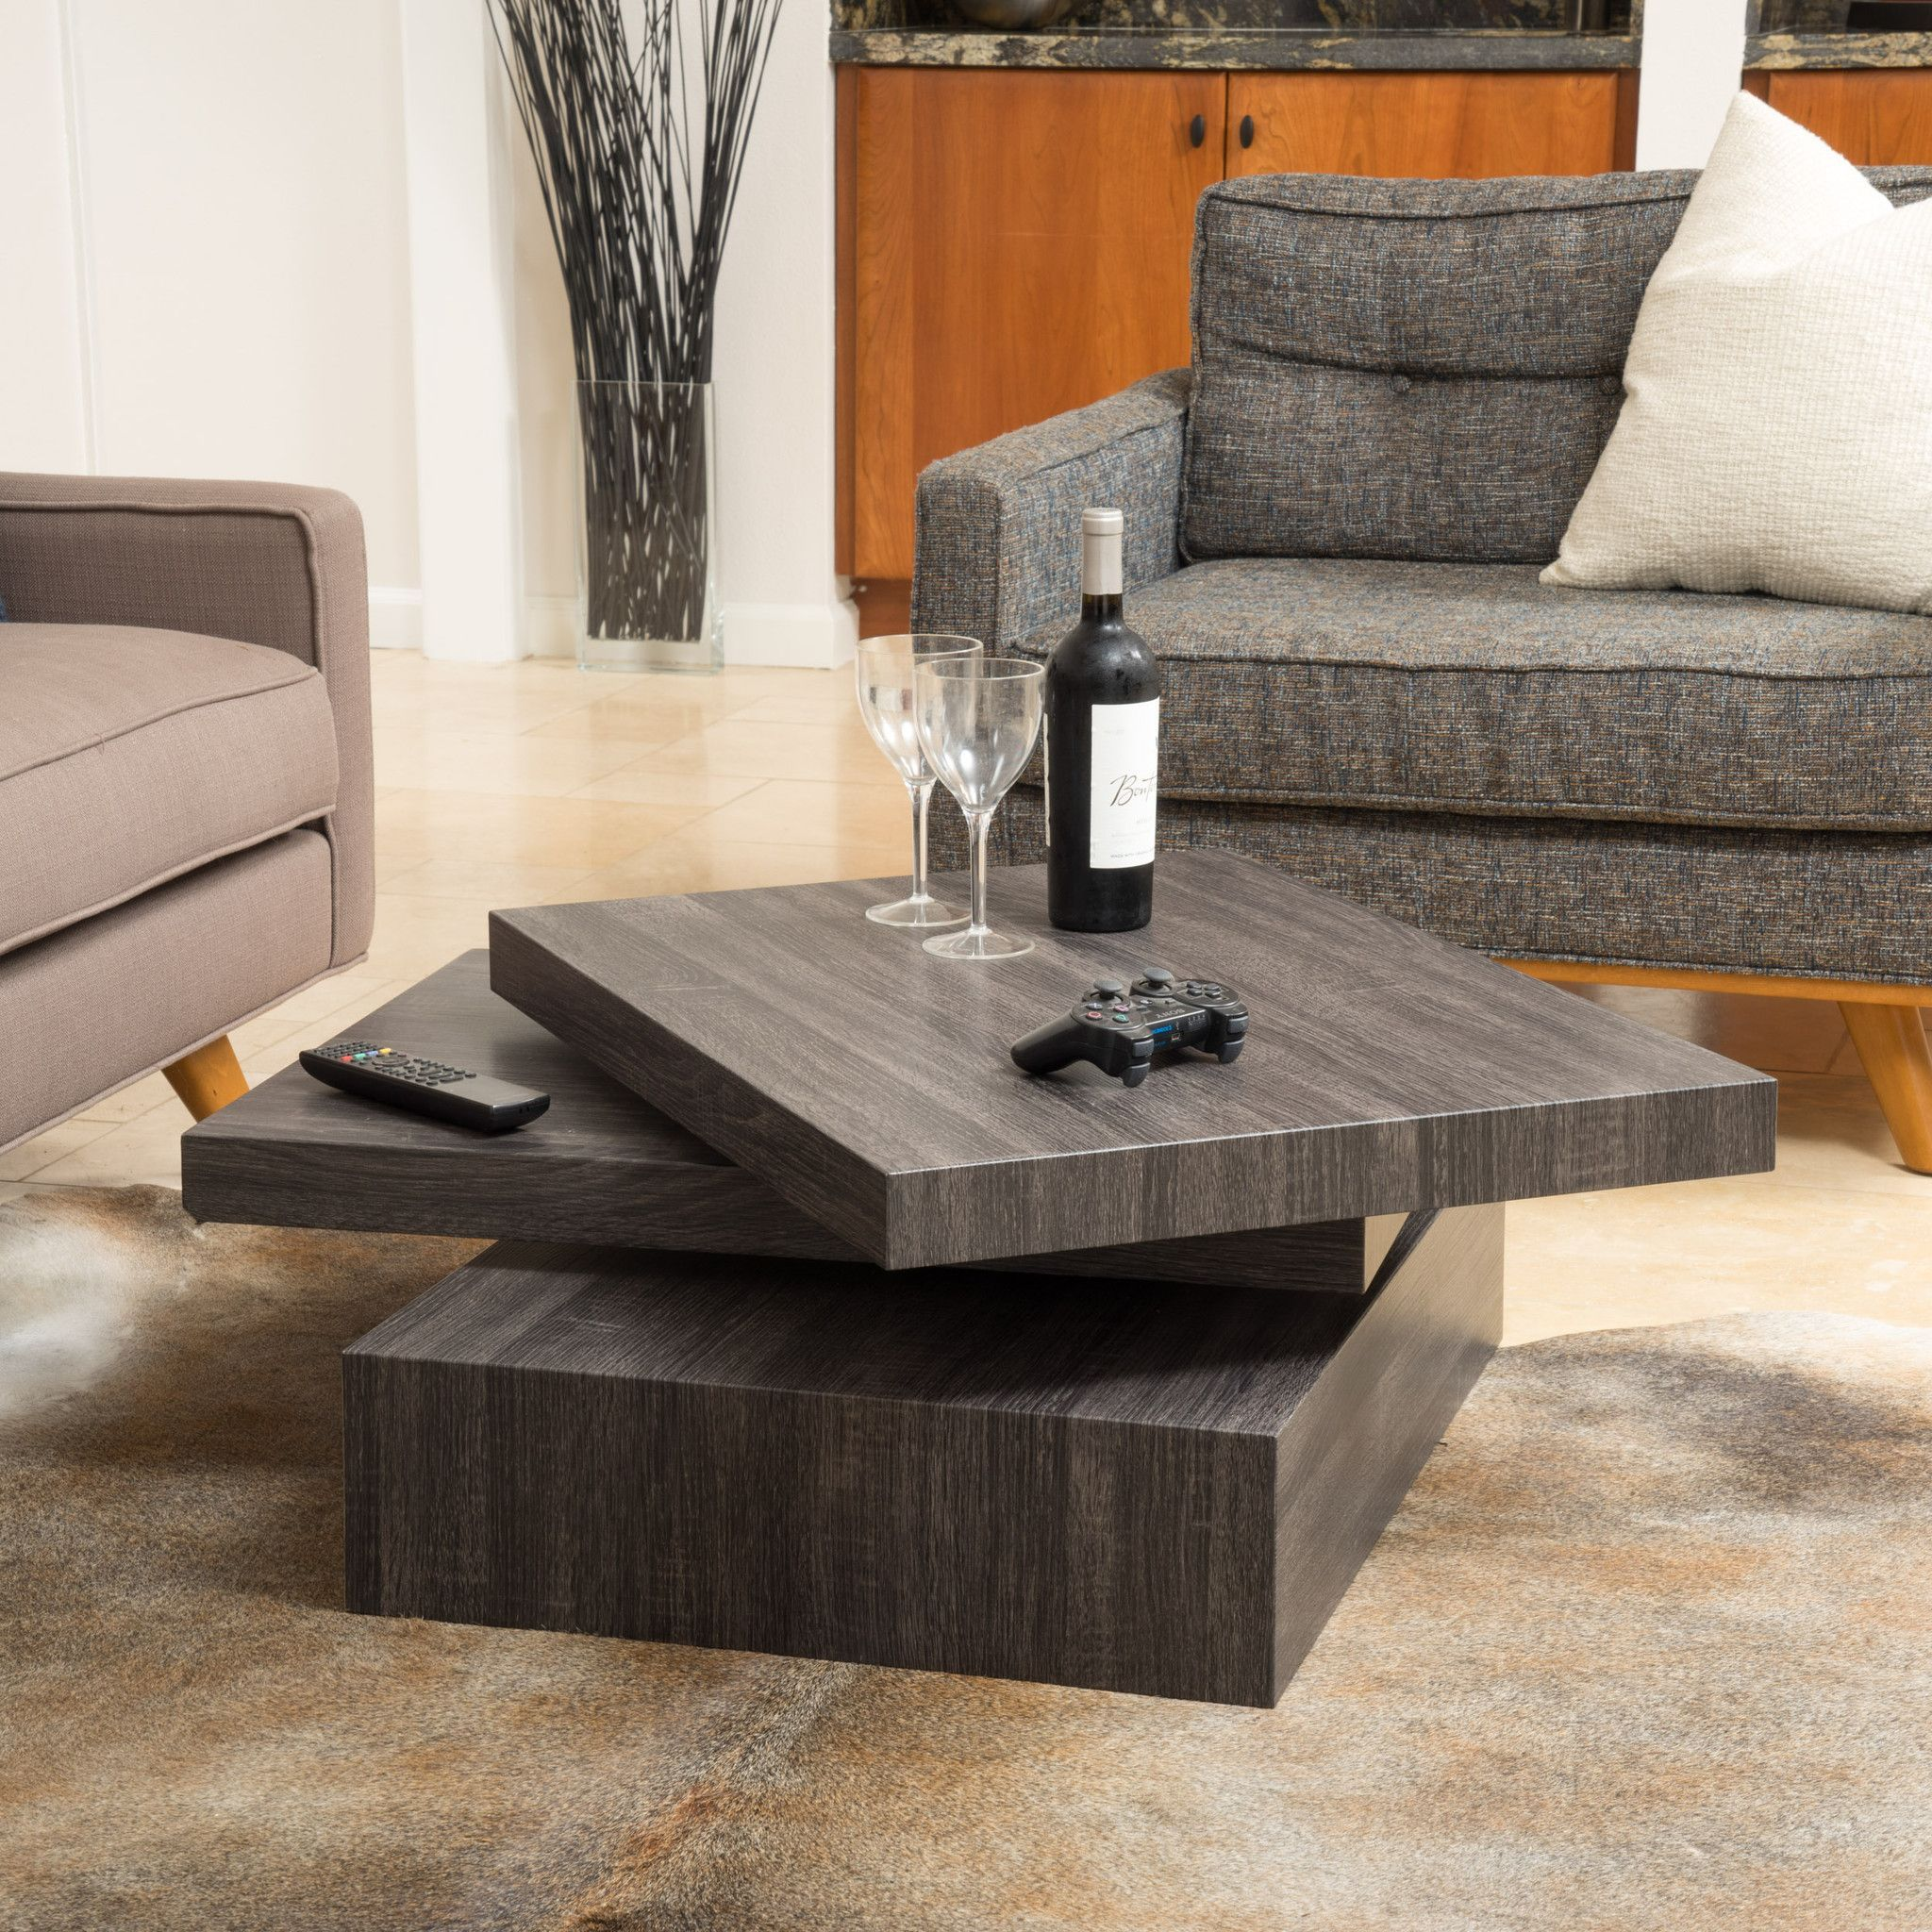 Haring Square Rotating Wood Coffee Table Unique Coffee Table